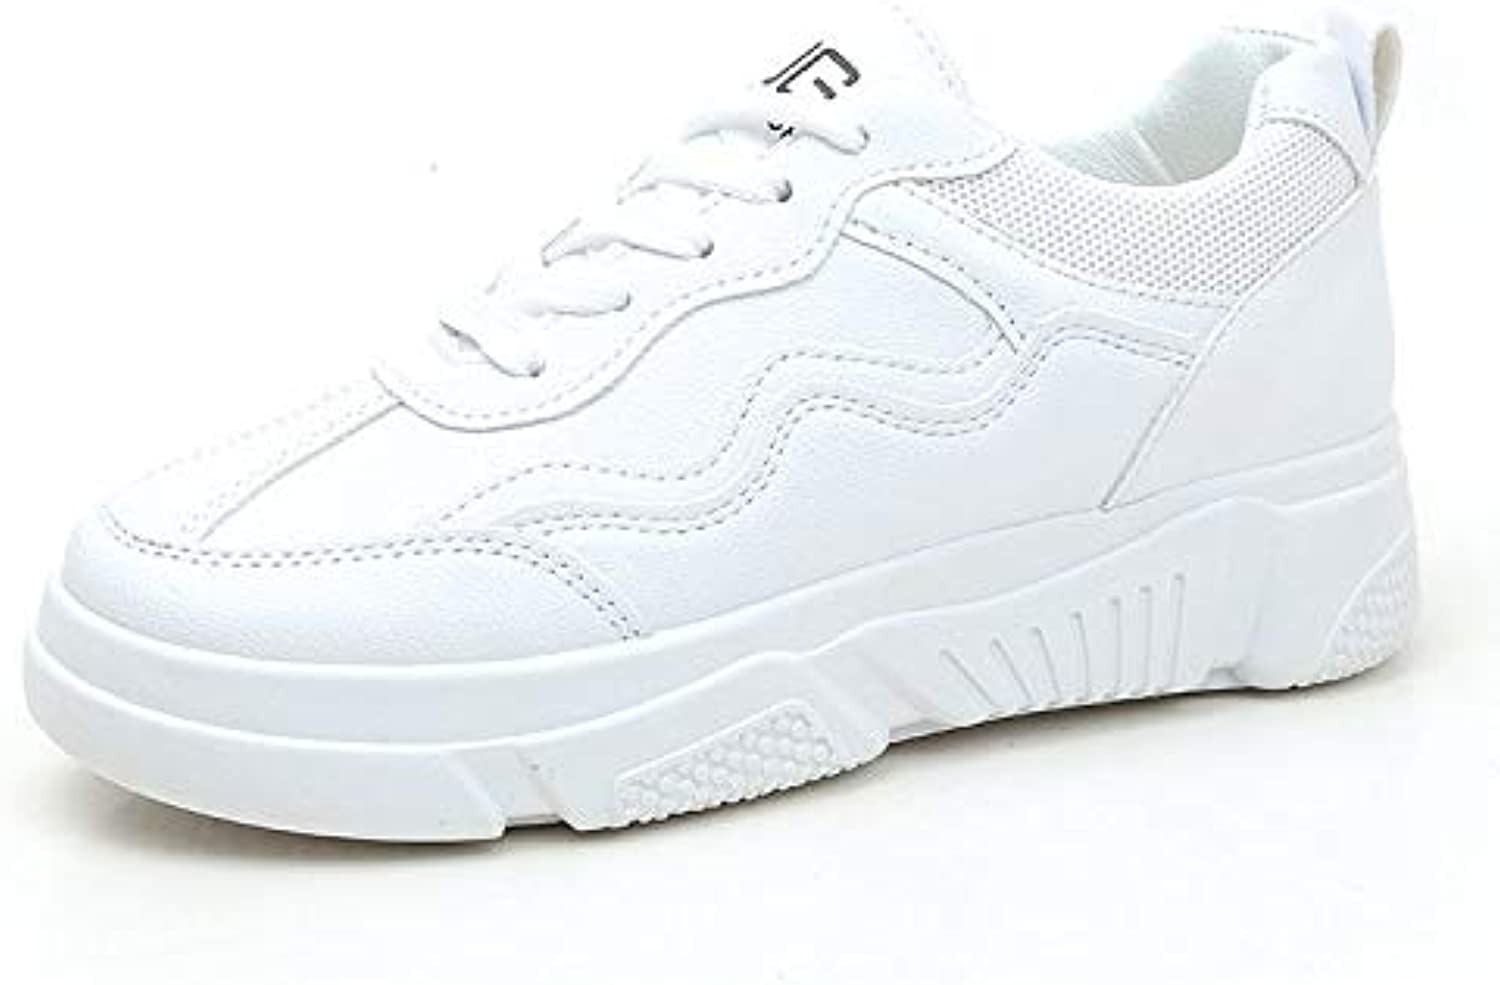 Small White shoes Girls Spring and Autumn Wild Leather Flat Korean Sports Casual shoes Moisture Absorption Breathable Non-Slip wear